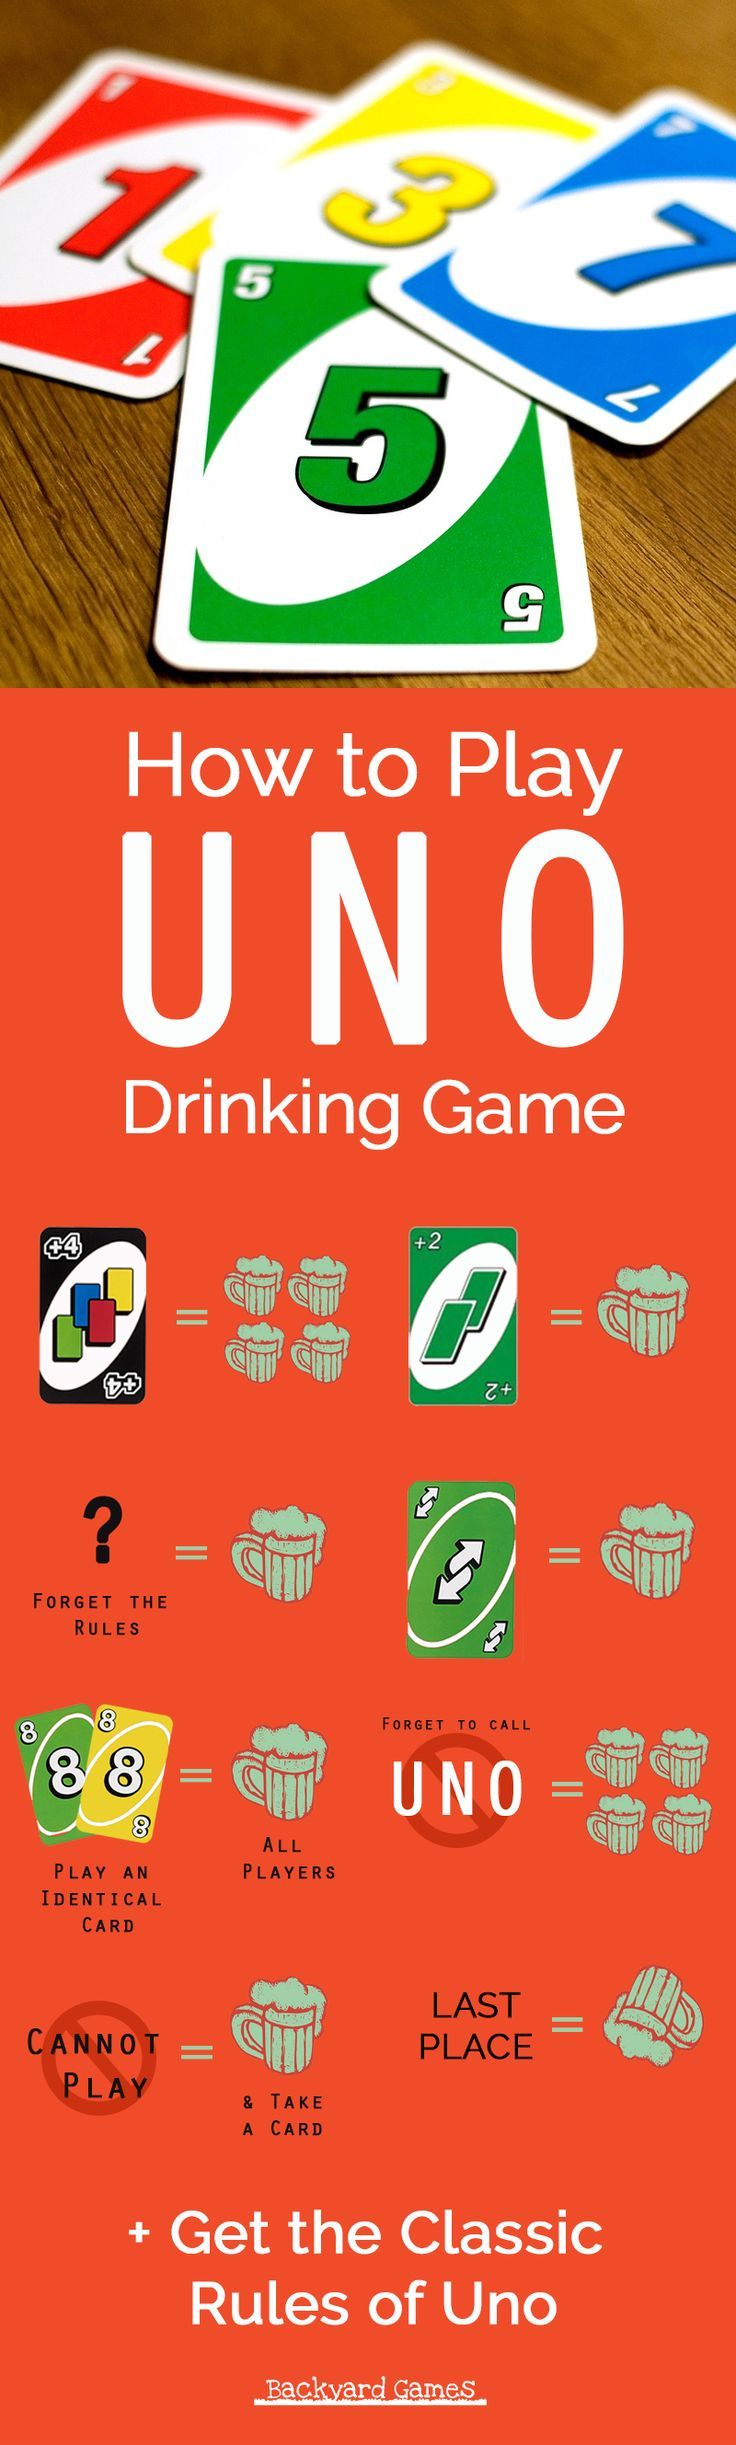 Uno Drinking Game Rules